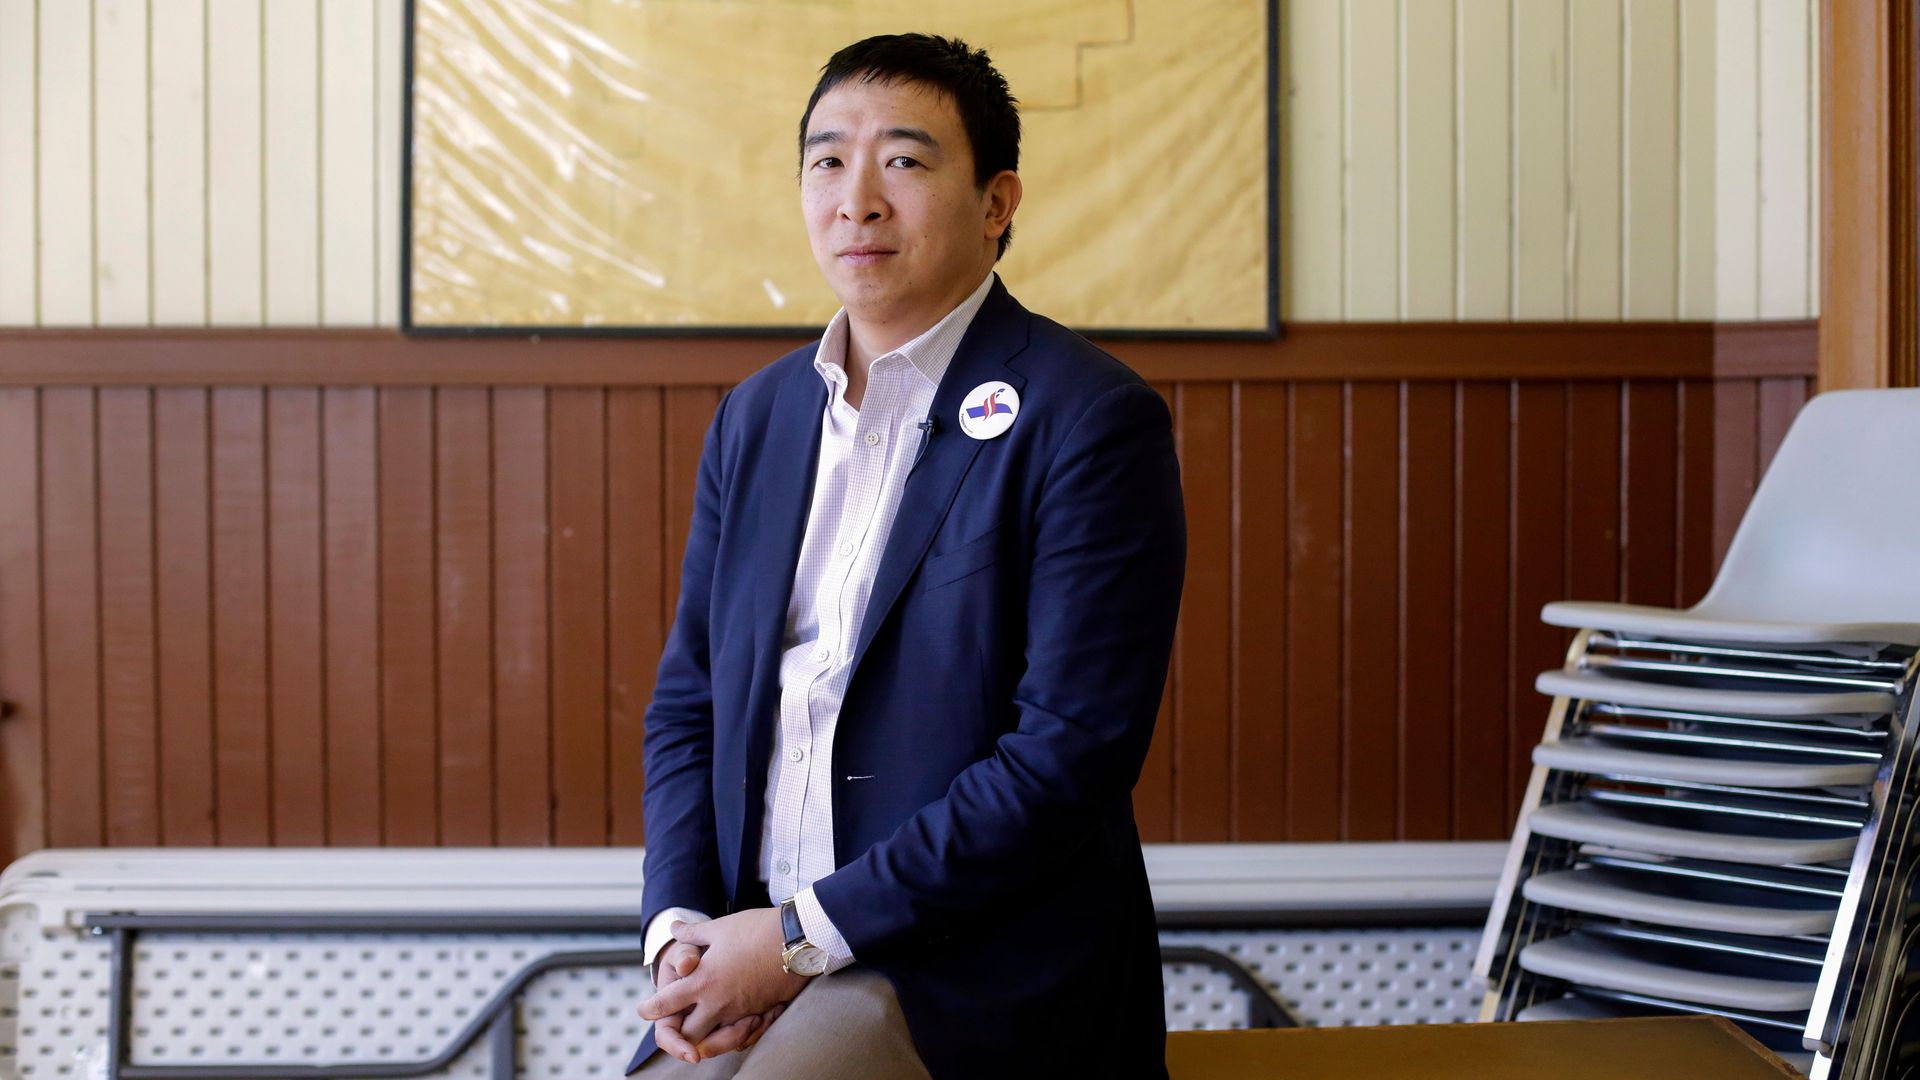 Democratic presidential candidate and businessman Andrew Yang